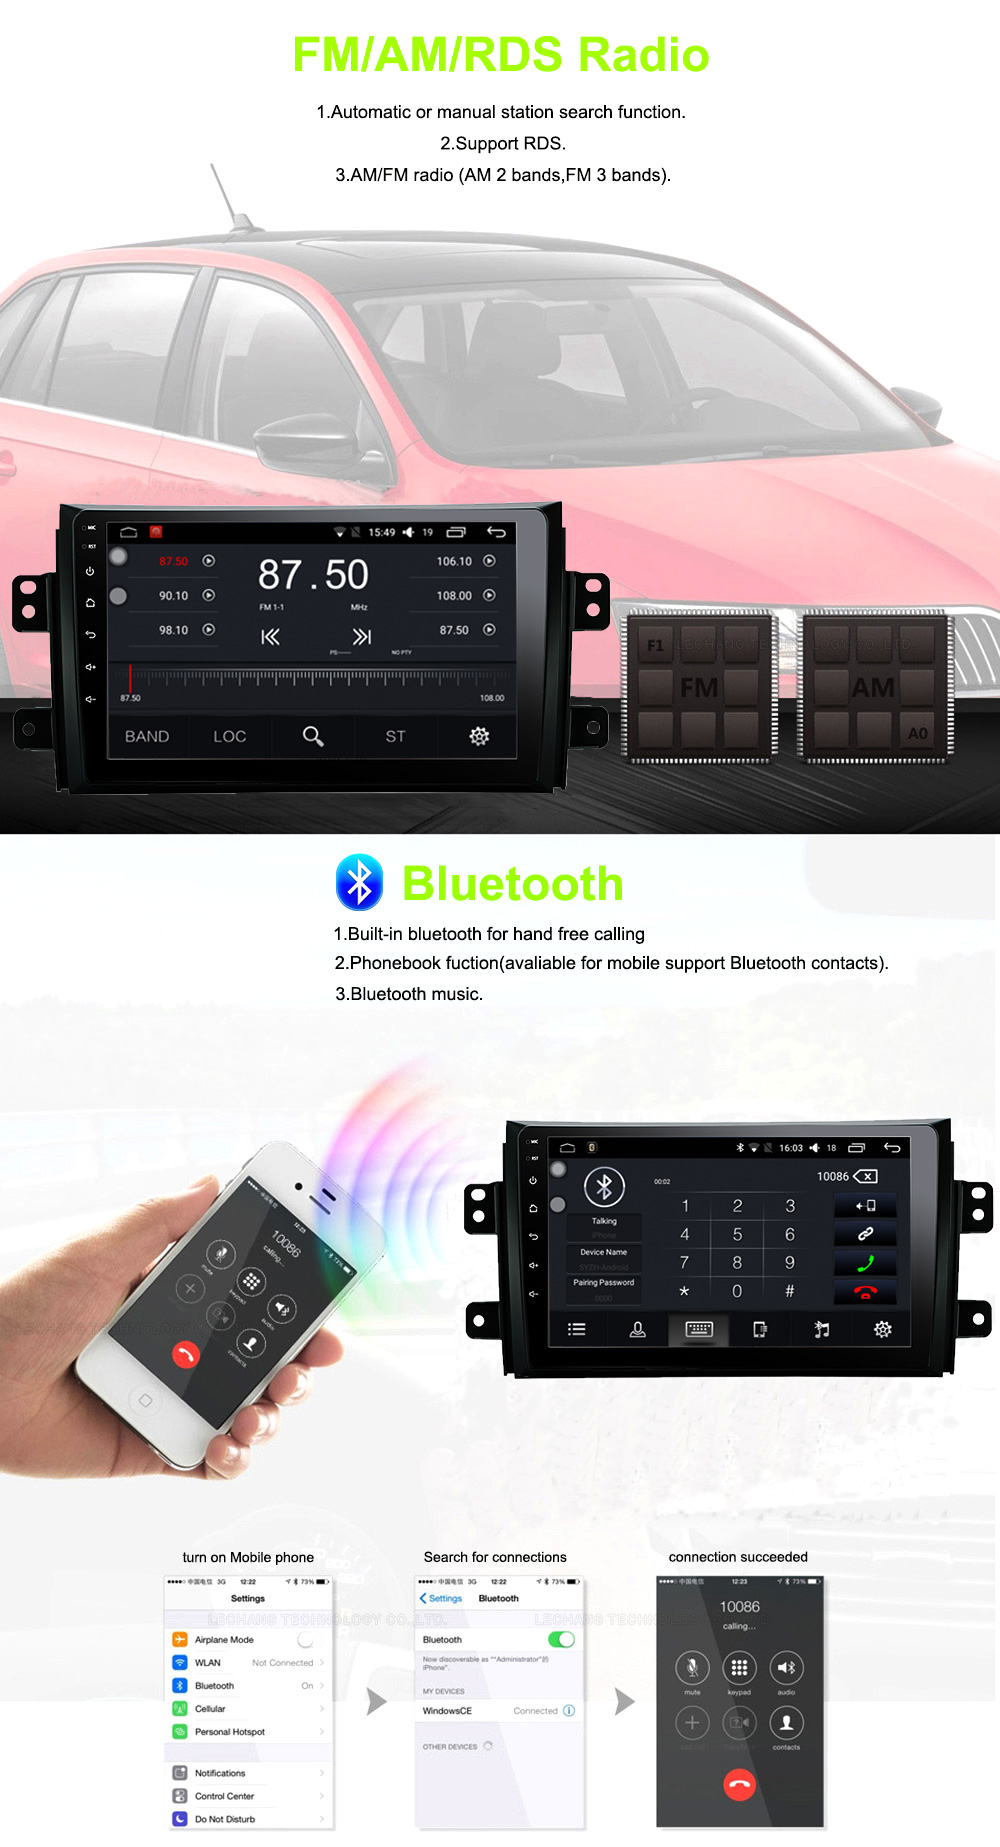 ATY9071 Android 8.1 car dvd for Suzuki SX4 2006 2007 2008 2009 2010 2011 2012 2013 car radio navigation